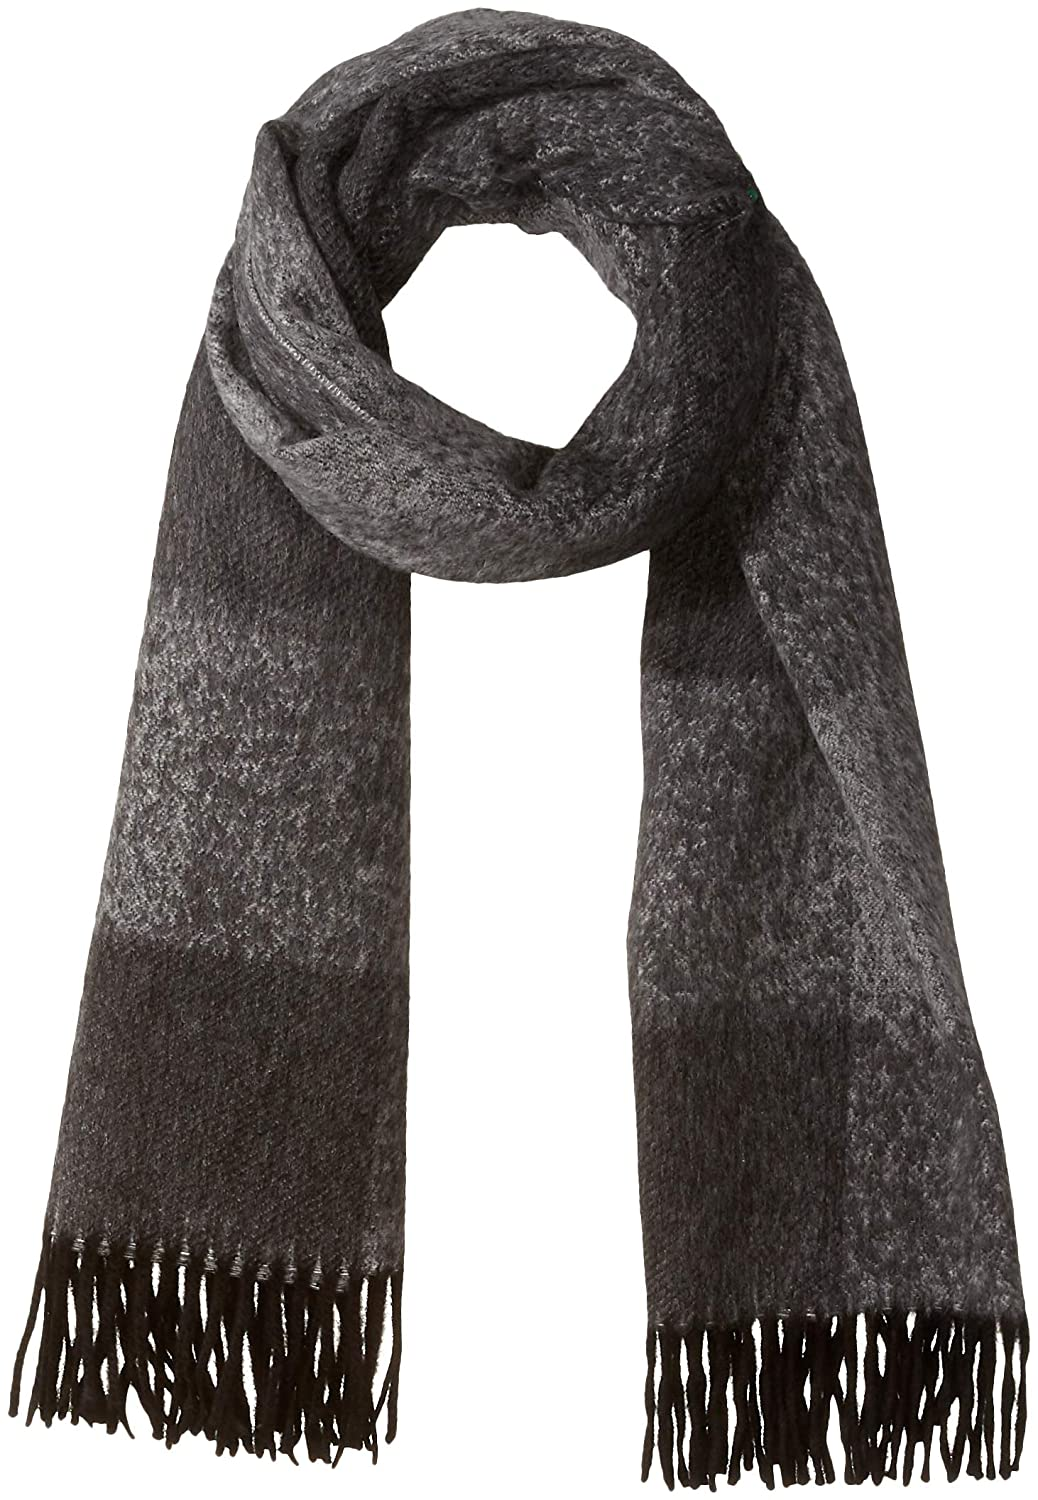 J.Lindeberg Men's Oversized Plaid Wool Scarf, Black One Size 86MC830089530